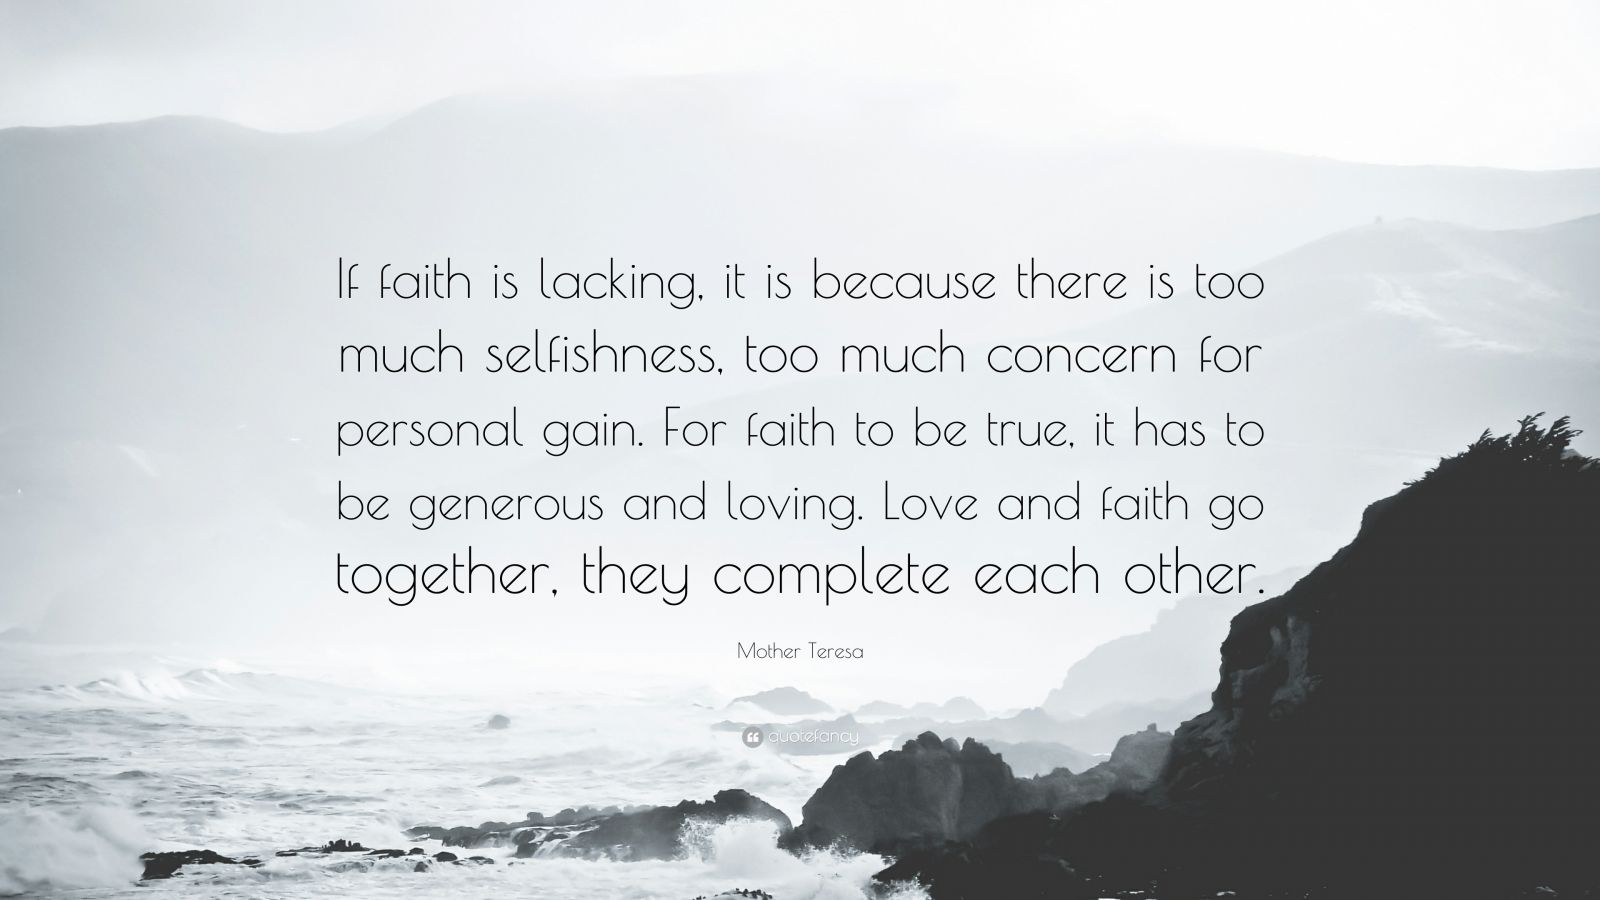 """Mother Teresa Quote: """"If faith is lacking, it is because there is too much selfishness, too much concern for personal gain. For faith to be true, it has to be generous and loving. Love and faith go together, they complete each other."""""""